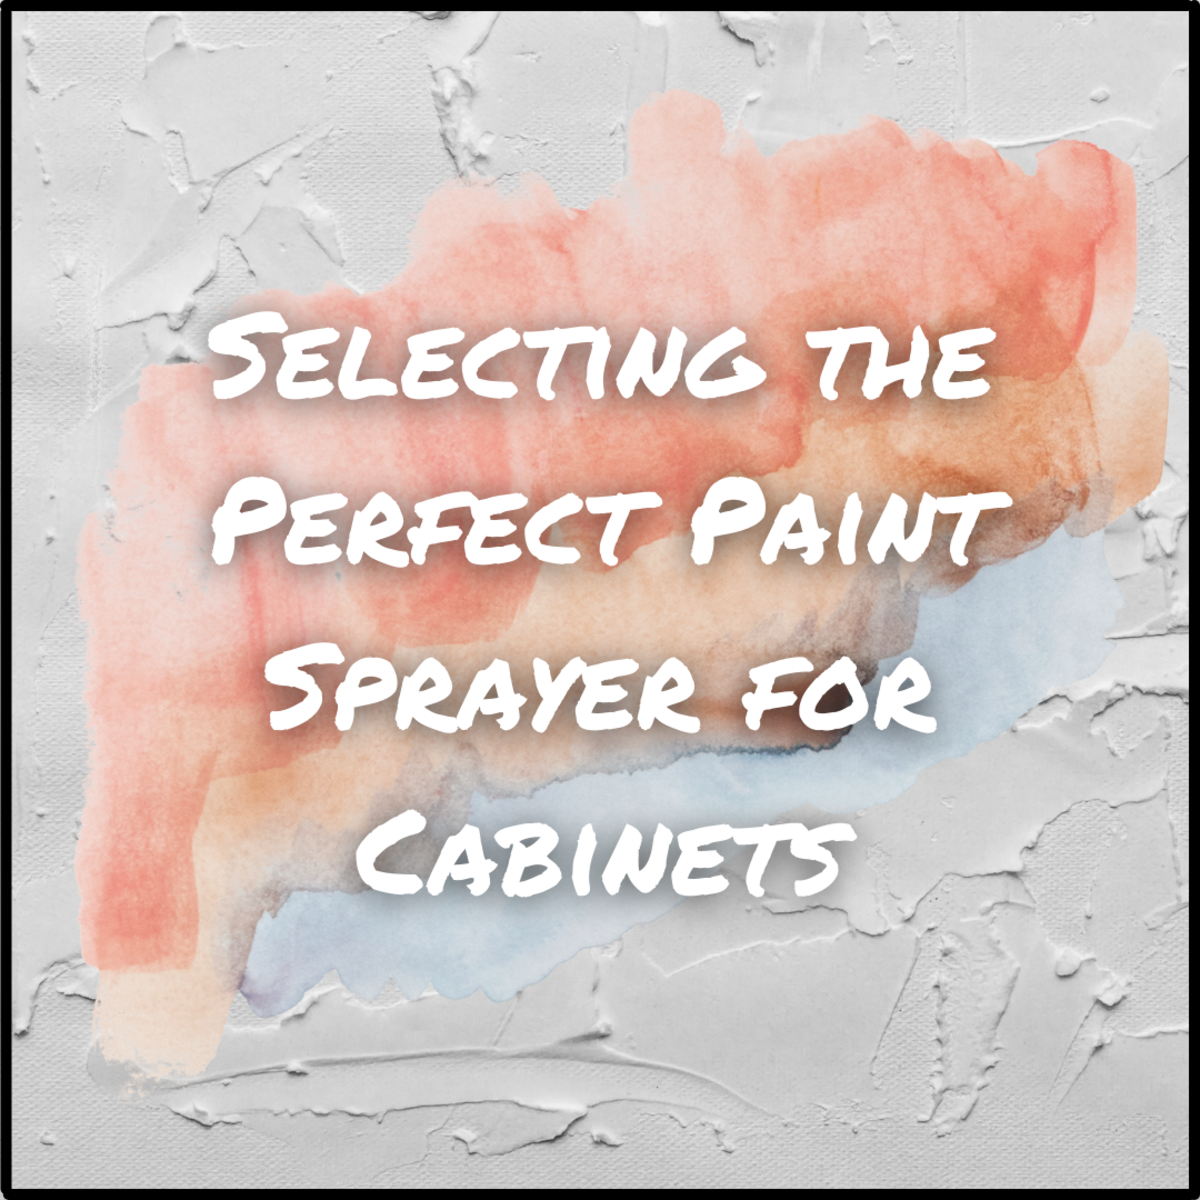 This article will help you select the best sprayer for your cabinet painting project.